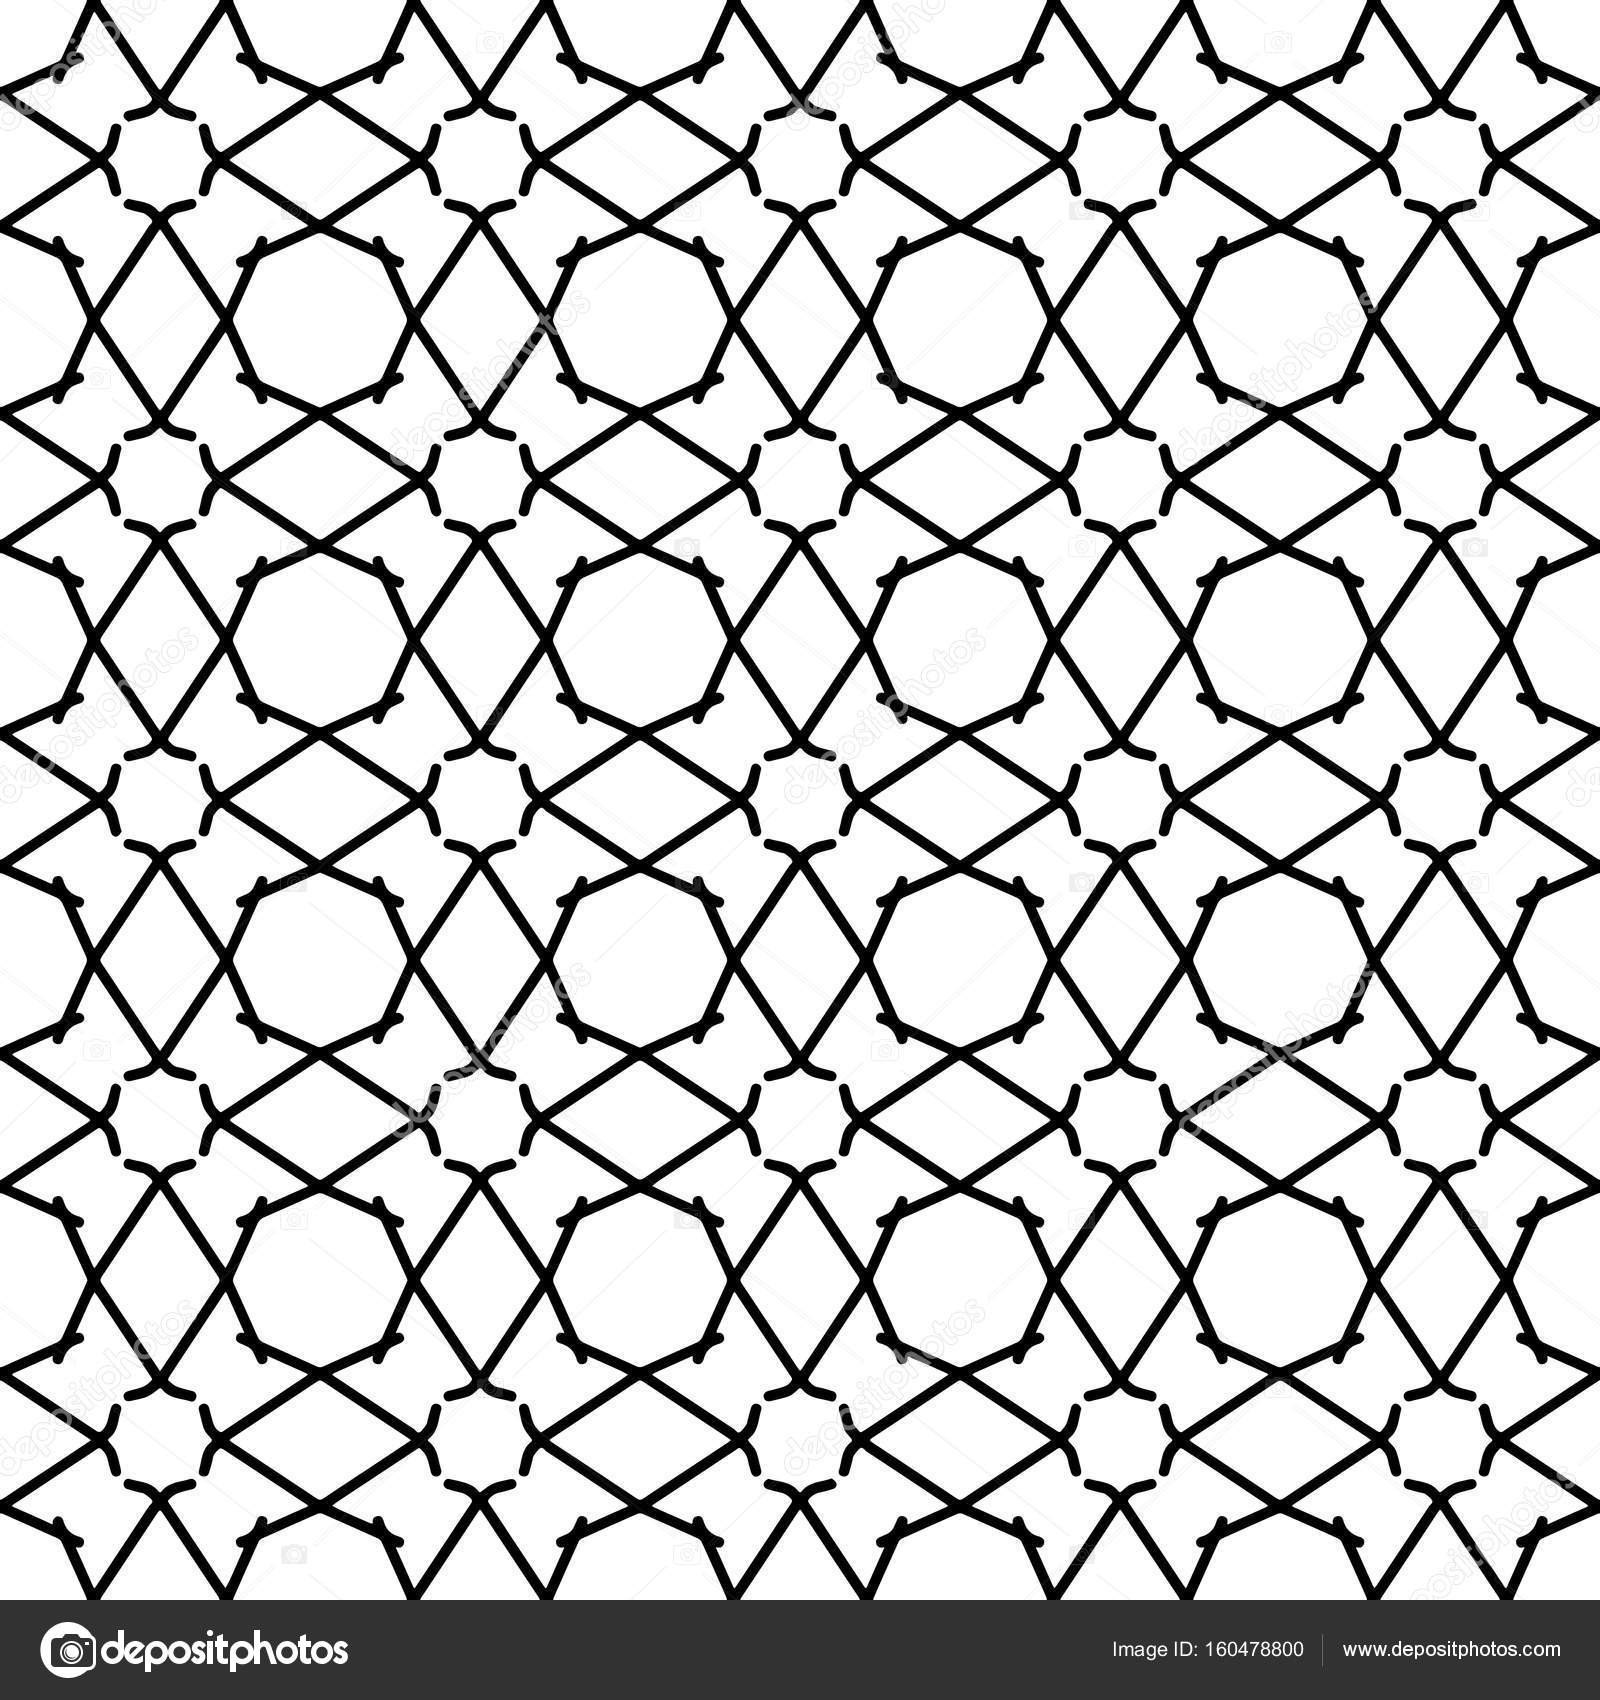 Abstract patterns Black and white — Stock Vector © TAMSAMTAM #160478800